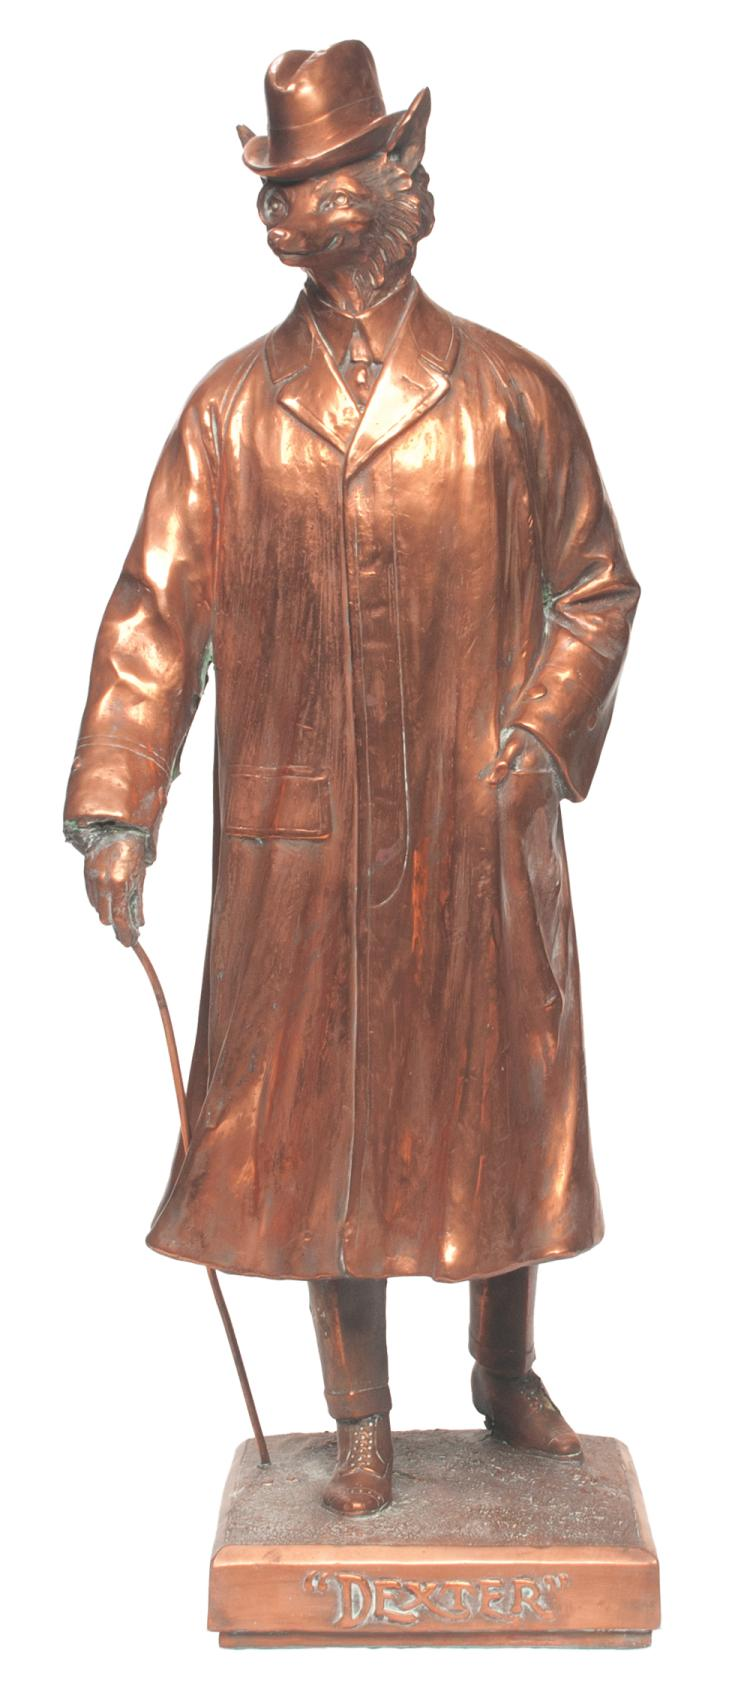 Copper sculptured figure of a fox in a full length trench coat titled Dexter, signed Th. Good, 32